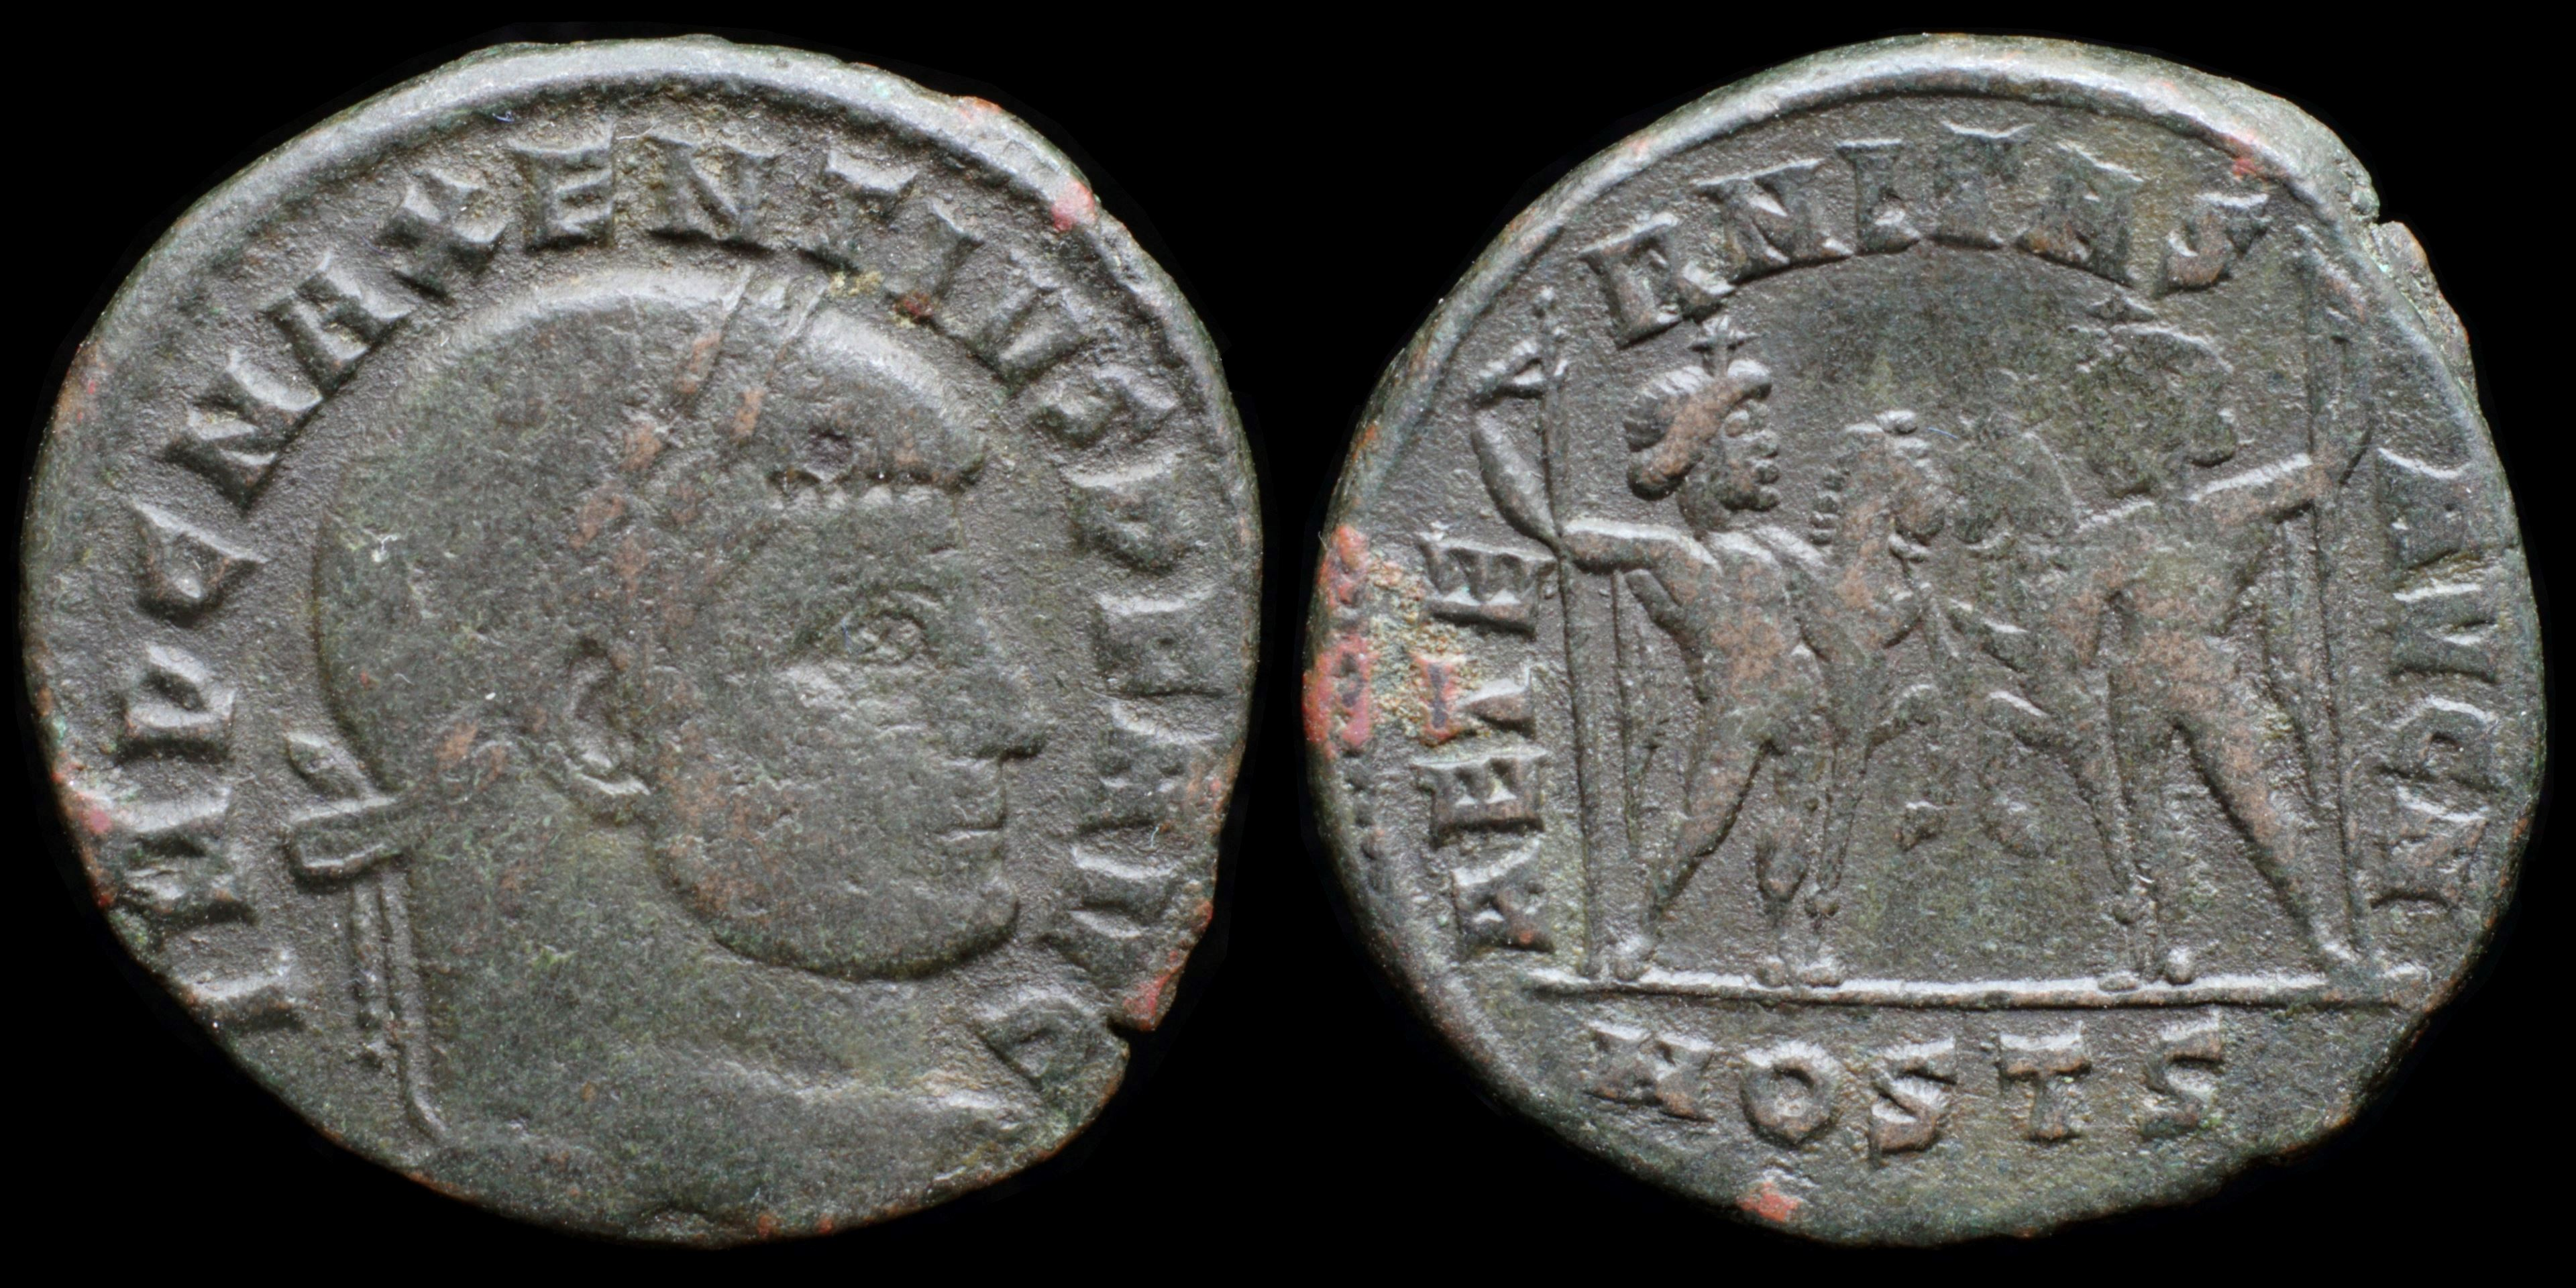 /Files/Images/Coinsite/CoinDB/625_Maxentius_Ostia.jpg